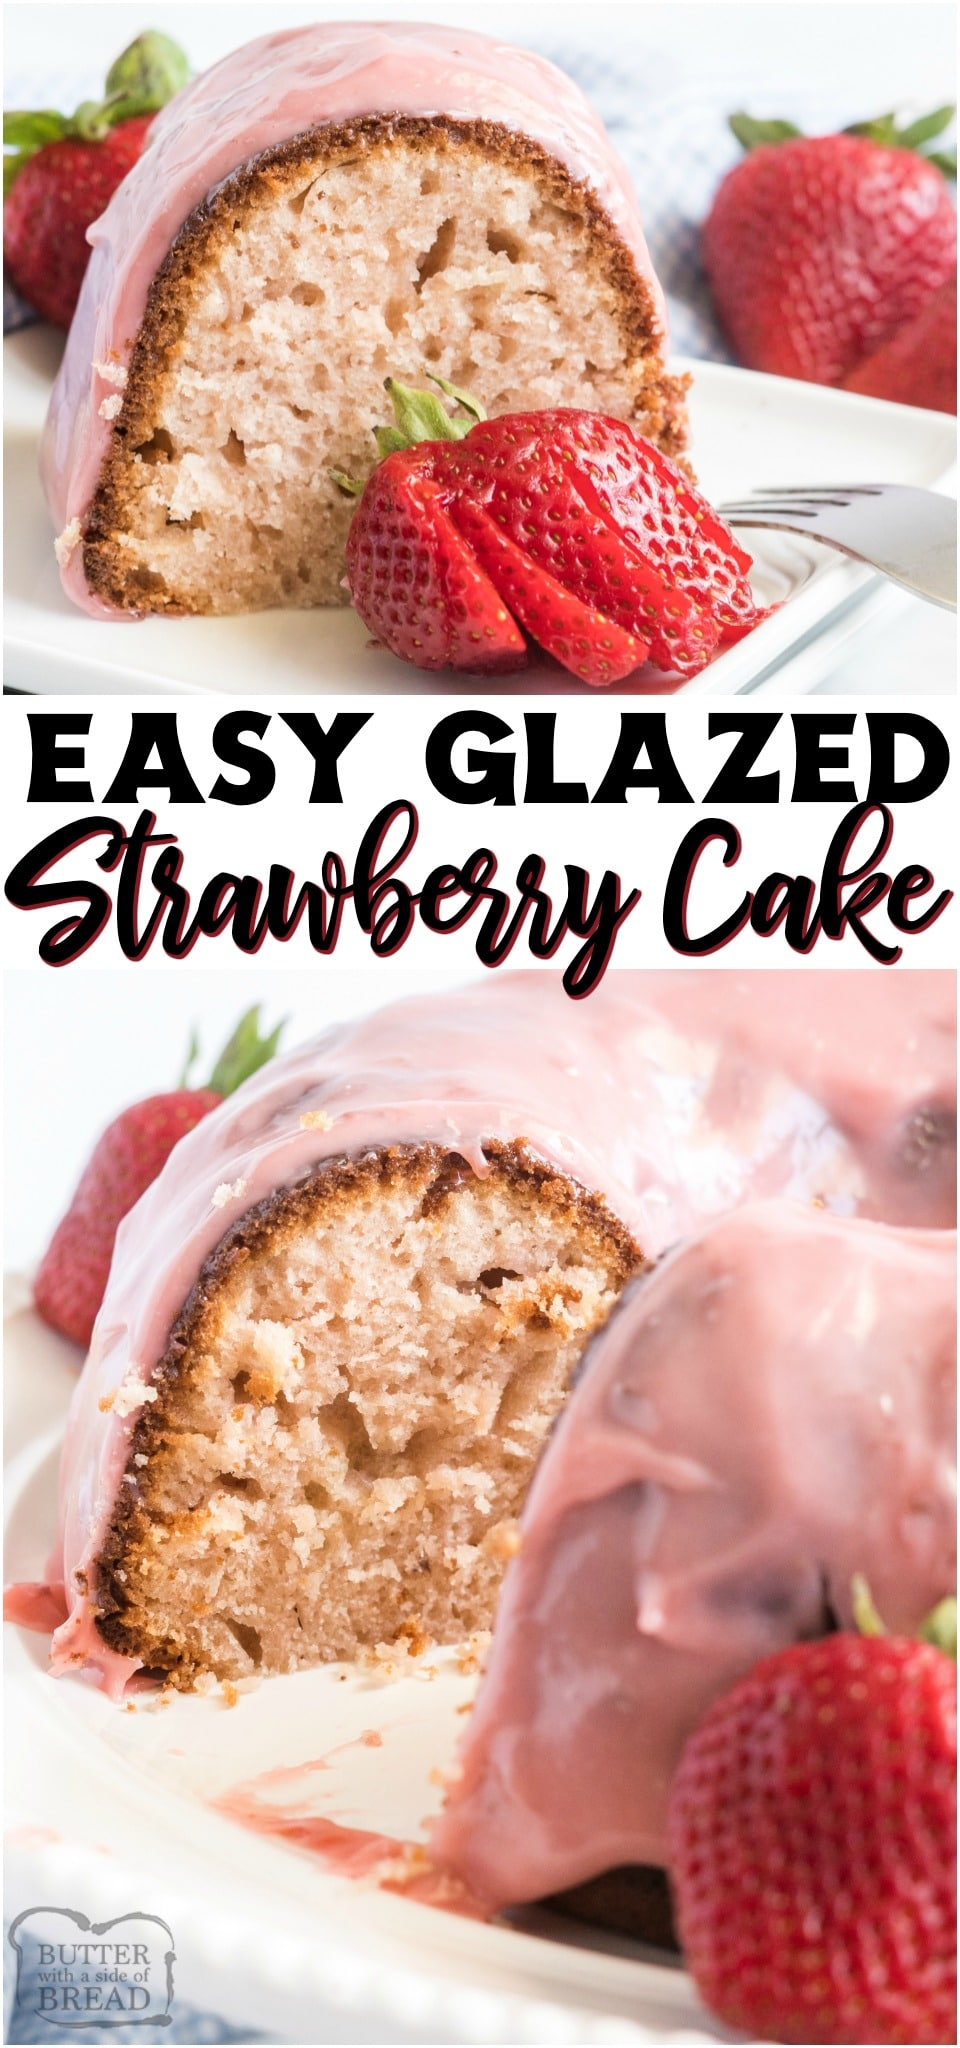 Glazed Strawberry Bundt Cake made with strawberry jam and buttermilk & topped with a sweet, fruity glaze! Easy Homemade Bundt Cake recipe with great strawberry flavor throughout!#cake #bundt #strawberry #homemade #baking #dessert #pink #berries #bundtcake #recipe from BUTTER WITH A SIDE OF BREAD